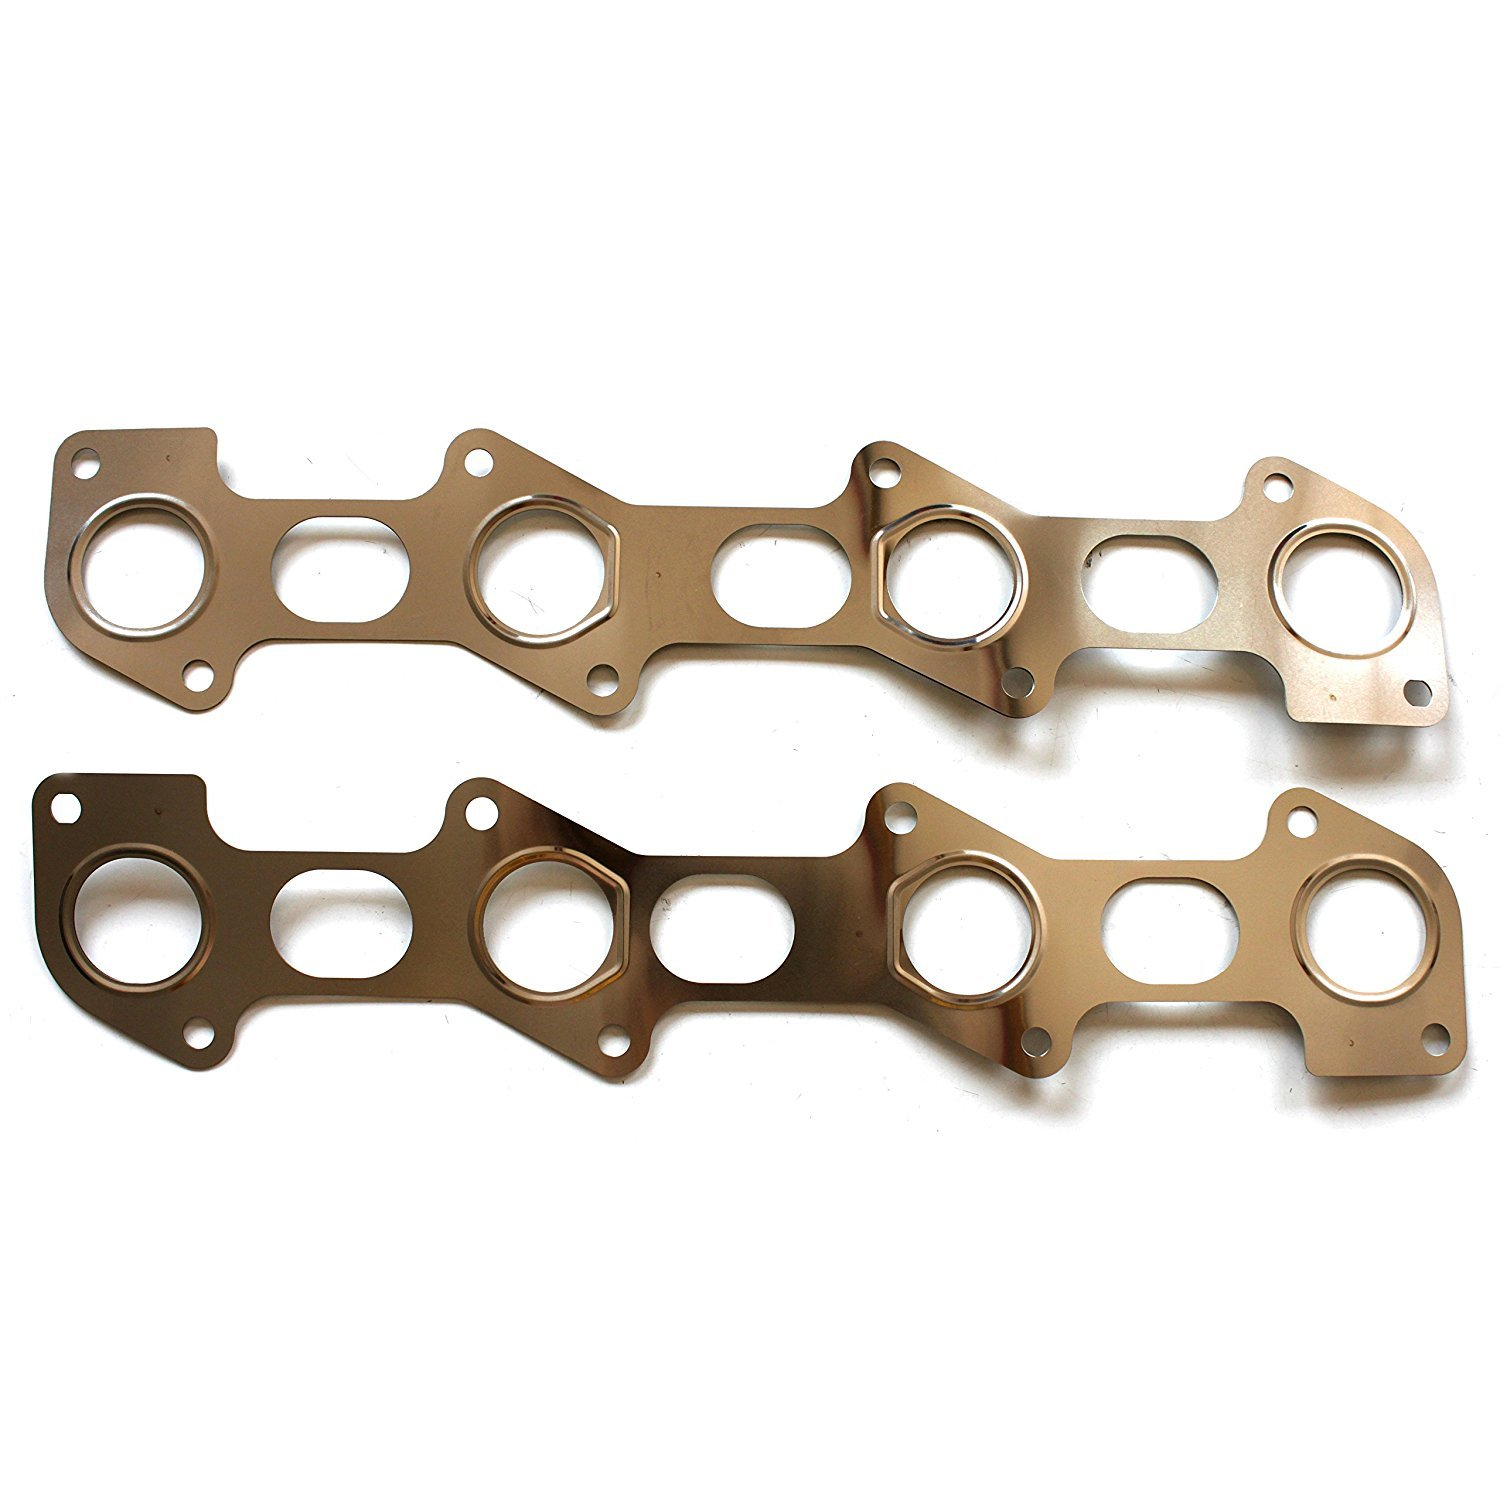 Scitoo Exhaust Manifold Gasket Kit 2003-2010 Ford E-350/E-450 Ford F-250/F-350 Excursion 6.0L 6.4L Engine Exhaust Manifold Gaskets Automotive Replacement Gasket Sets 058587-5206-1546564801